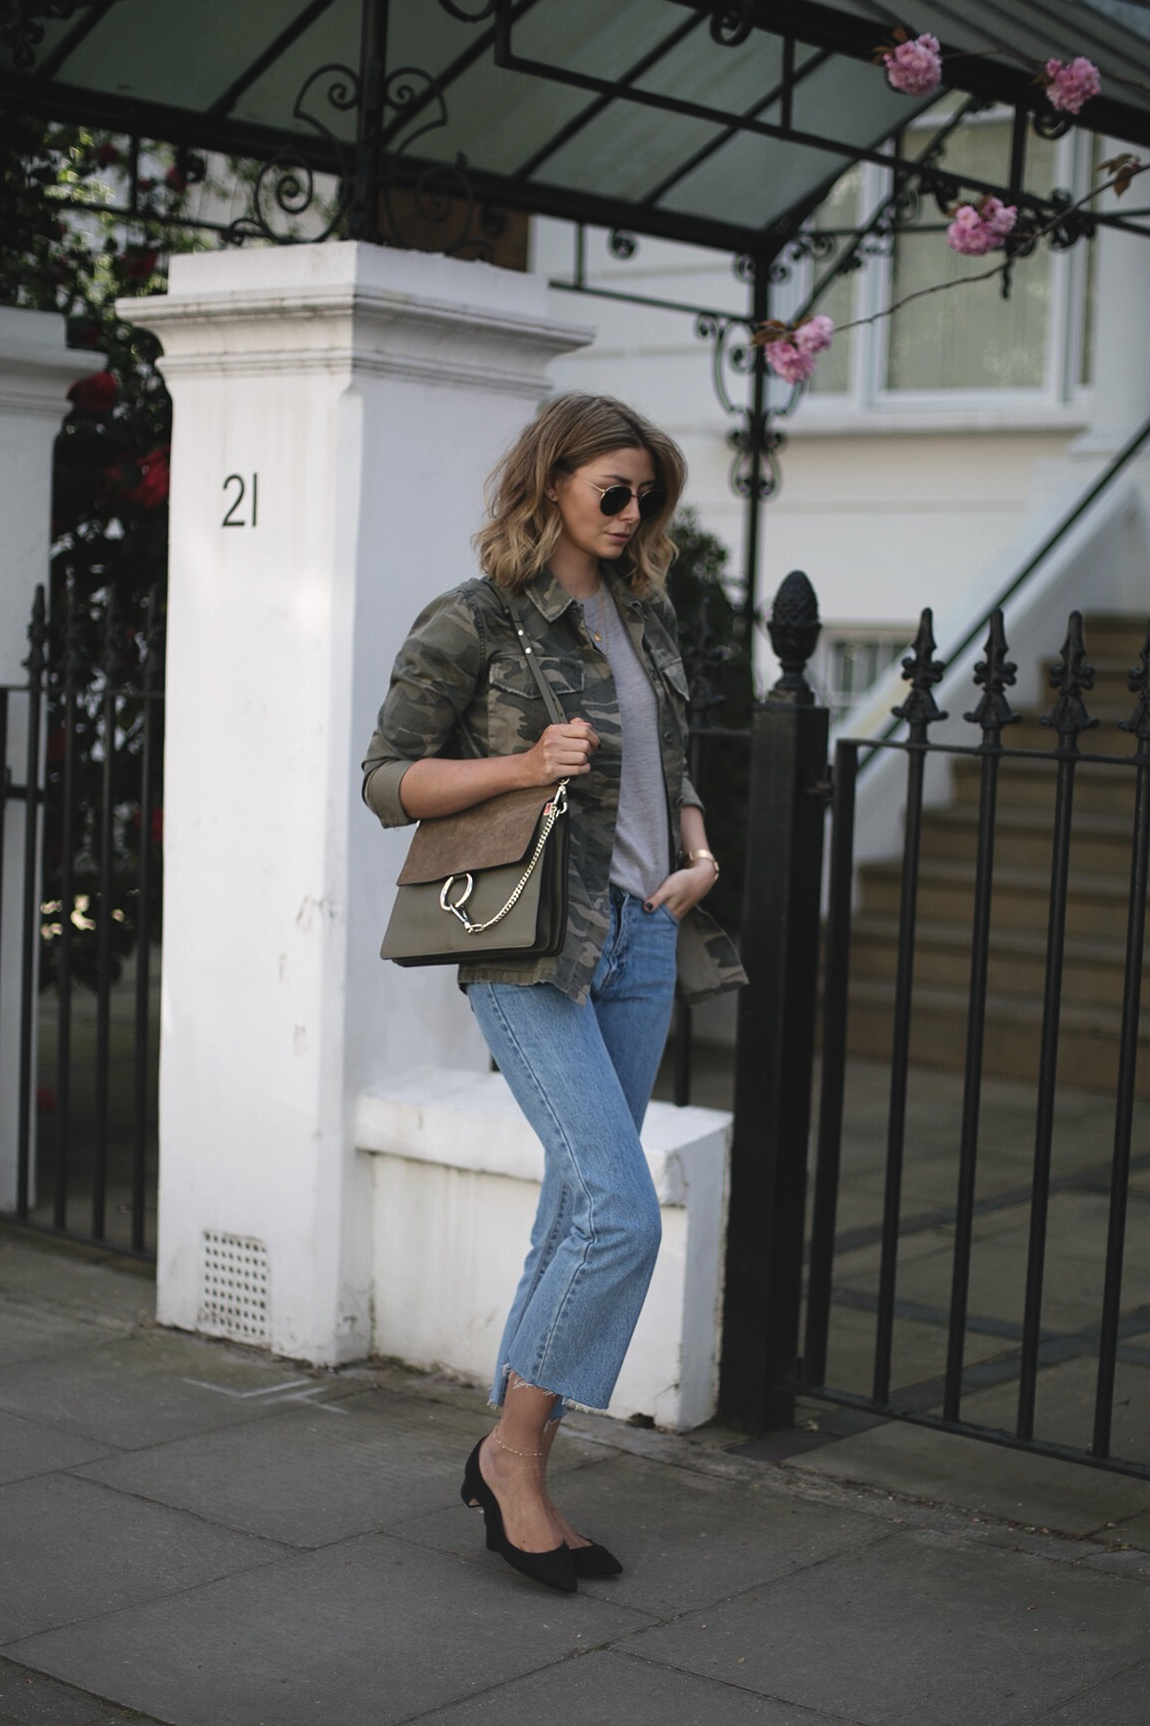 Emma Hill wears camouflage jacket, grey linen t-shirt, khaki Chloe Faye bag, cropped frayed hem light wash jeans, Dune x Rupert Sanderson low block heels, round Rayban sunglasses, gold jewellery, casual Spring outfit